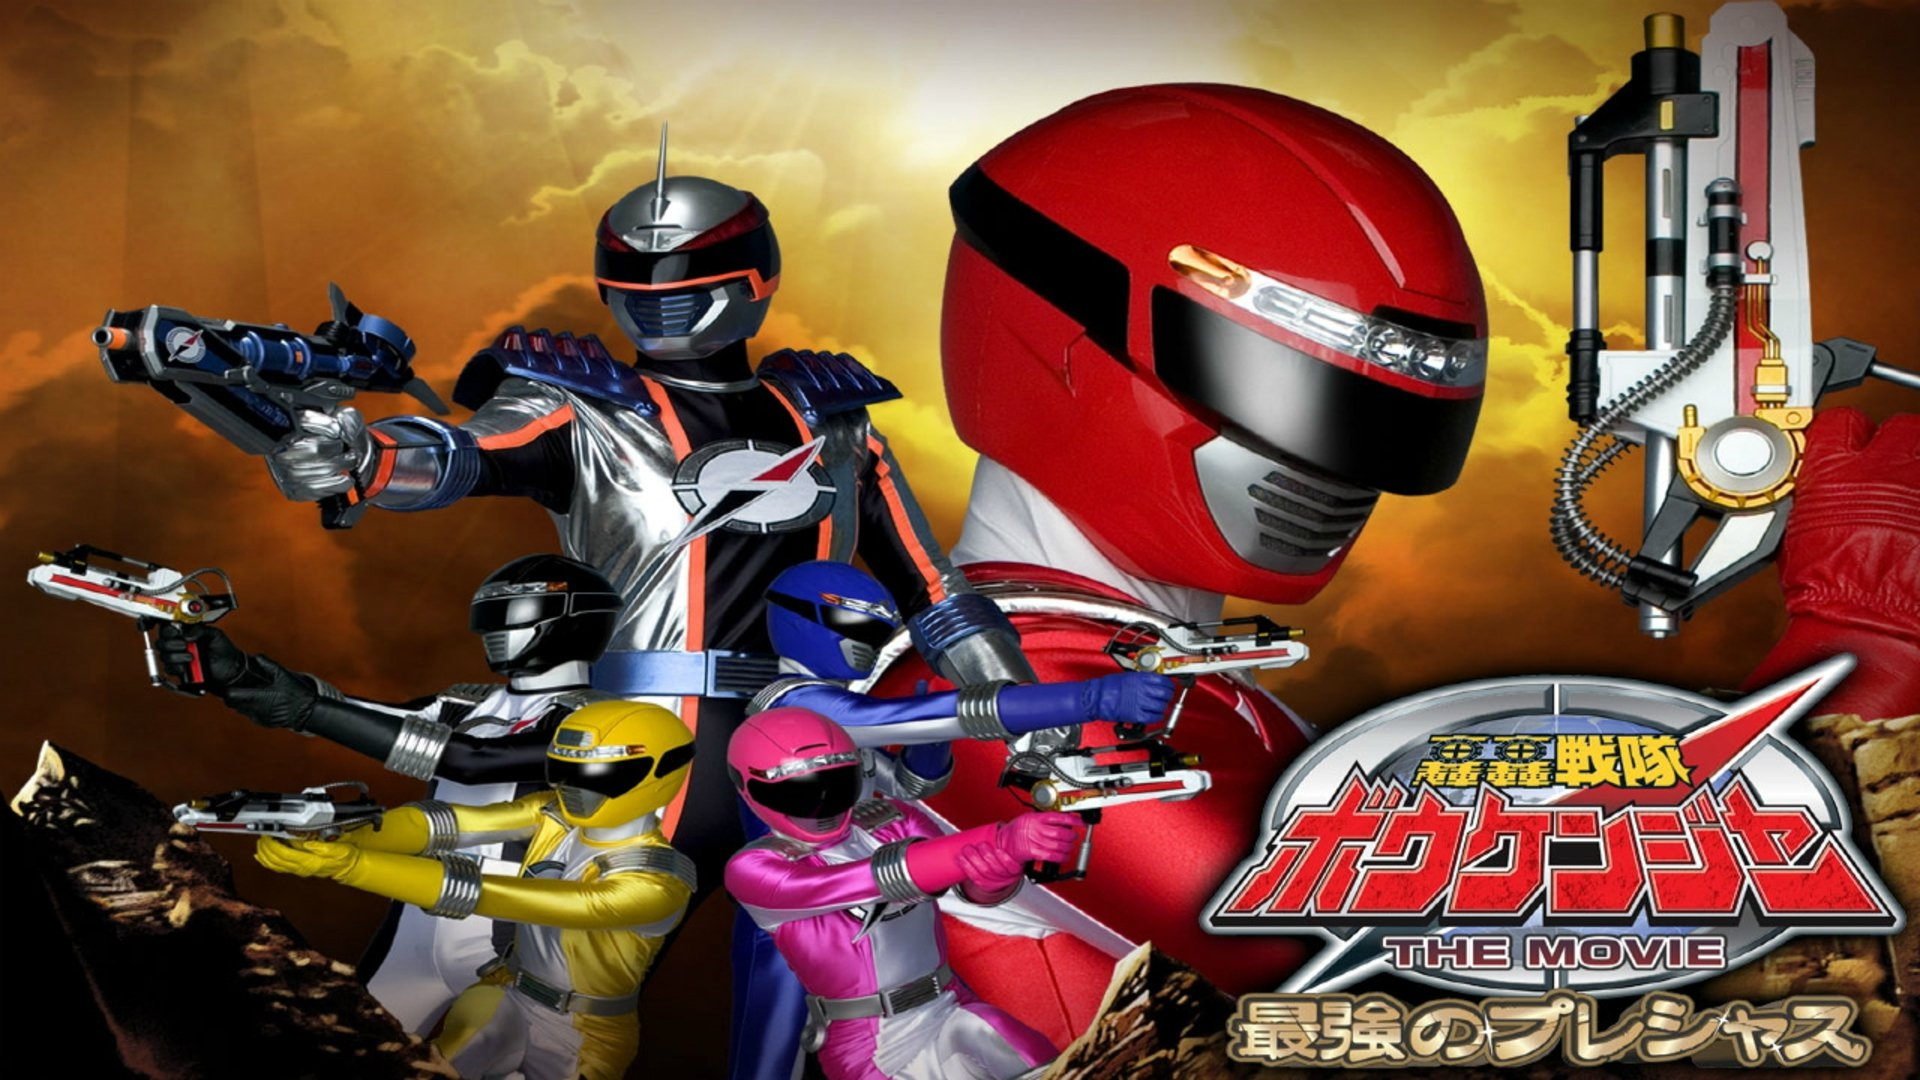 Xem phim GoGo Sentai Boukenger The Movie: The Greatest Precious - GoGo Sentai Boukenger The Movie: Precious Tối Thượng Vietsub